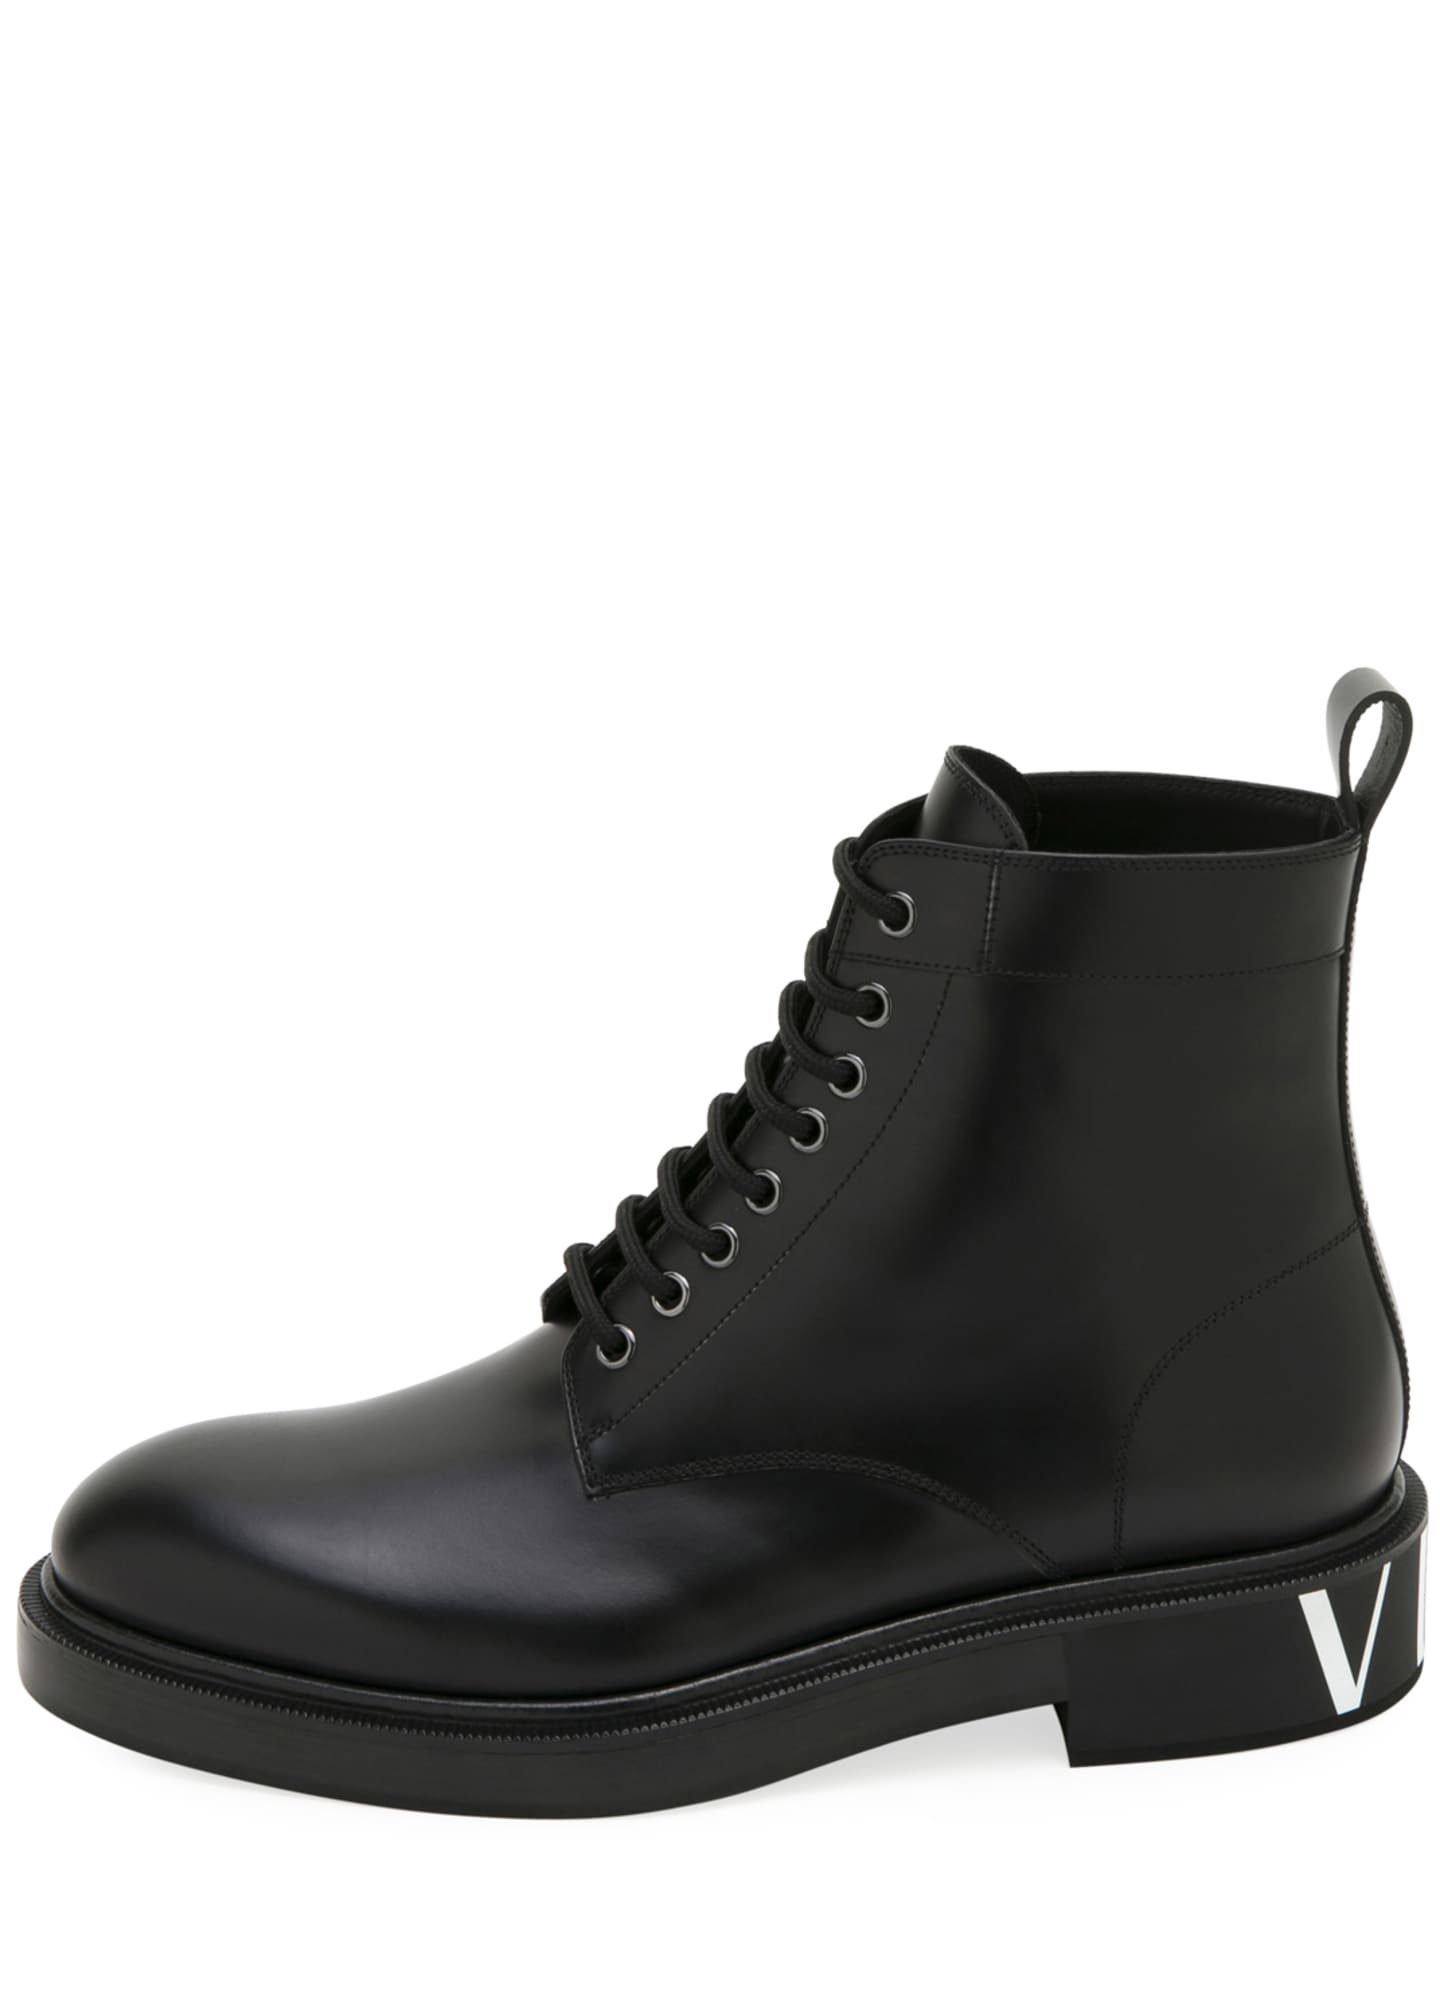 Image 2 of 3: Men's Leather Lace-Up Boots